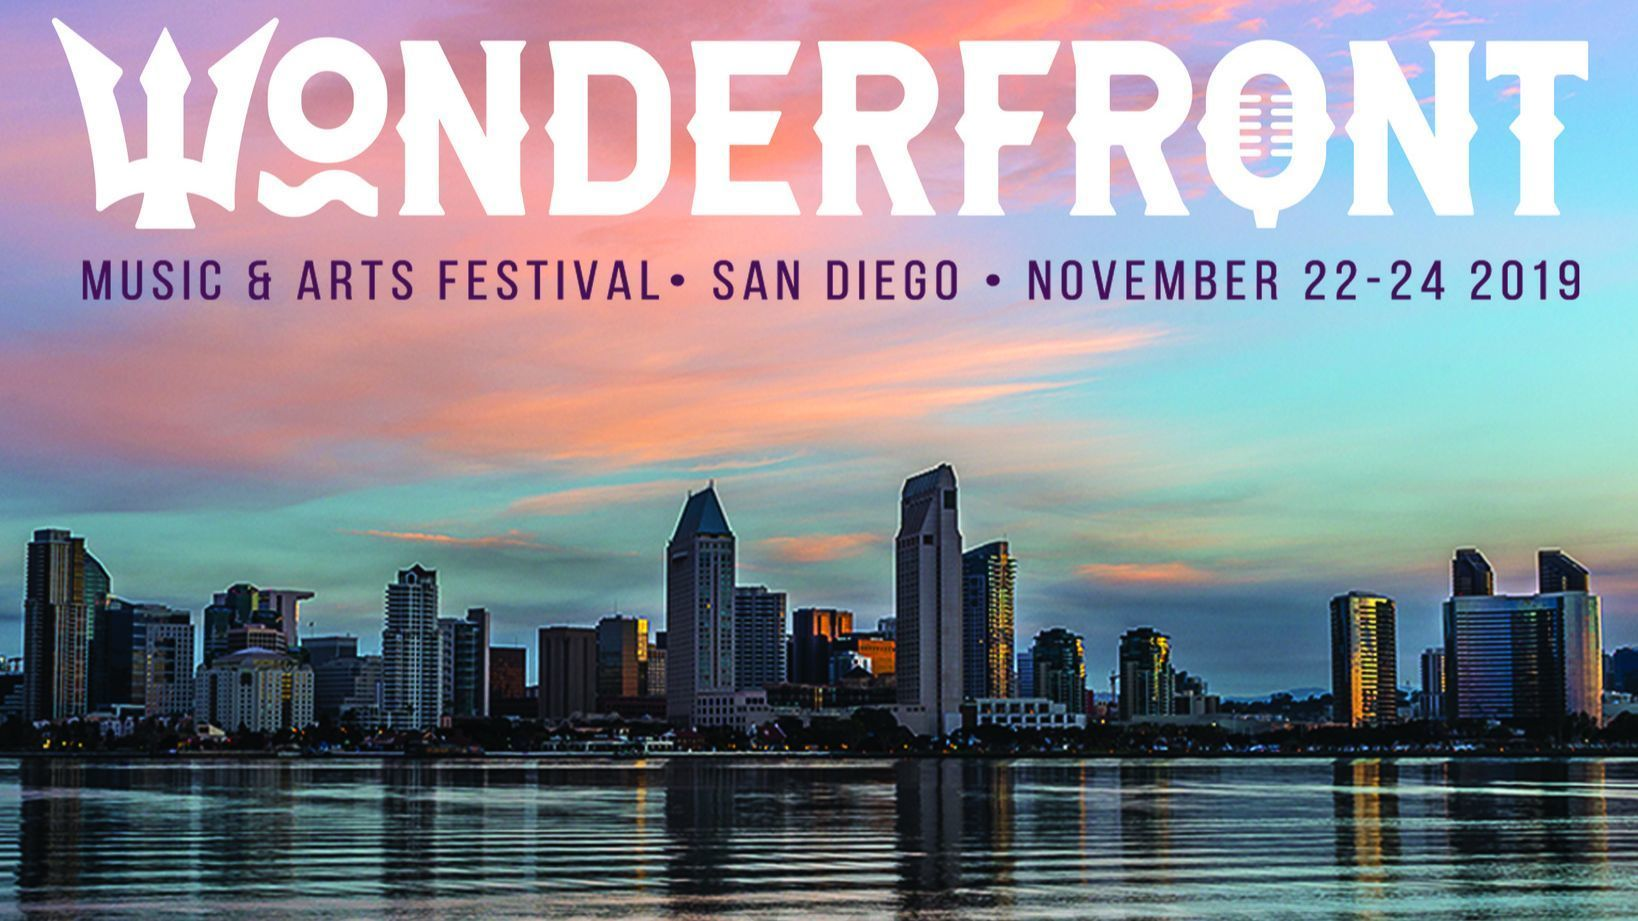 Wonderfront music and arts festival to debut in San Diego, with backing from Trevor Hoffman, Rob Machado and Tony Hawk